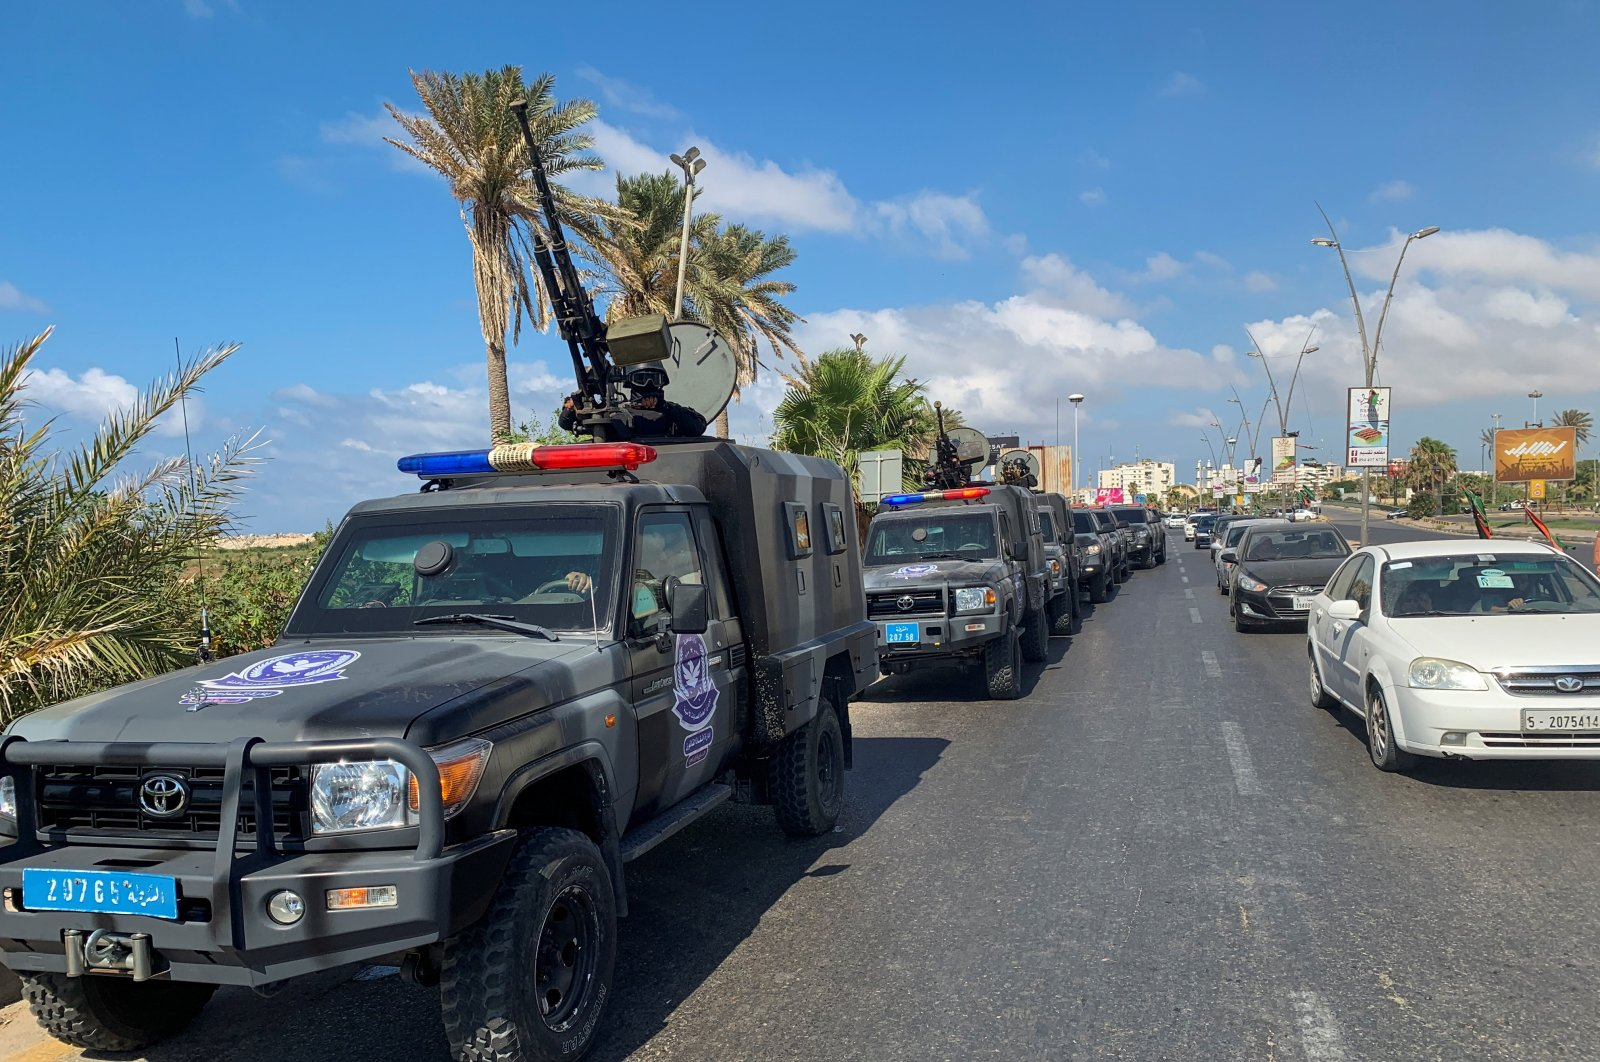 Security forces in military vehicles during a security deployment in Tripoli, Libya, July 20, 2020. (Reuters Photo)